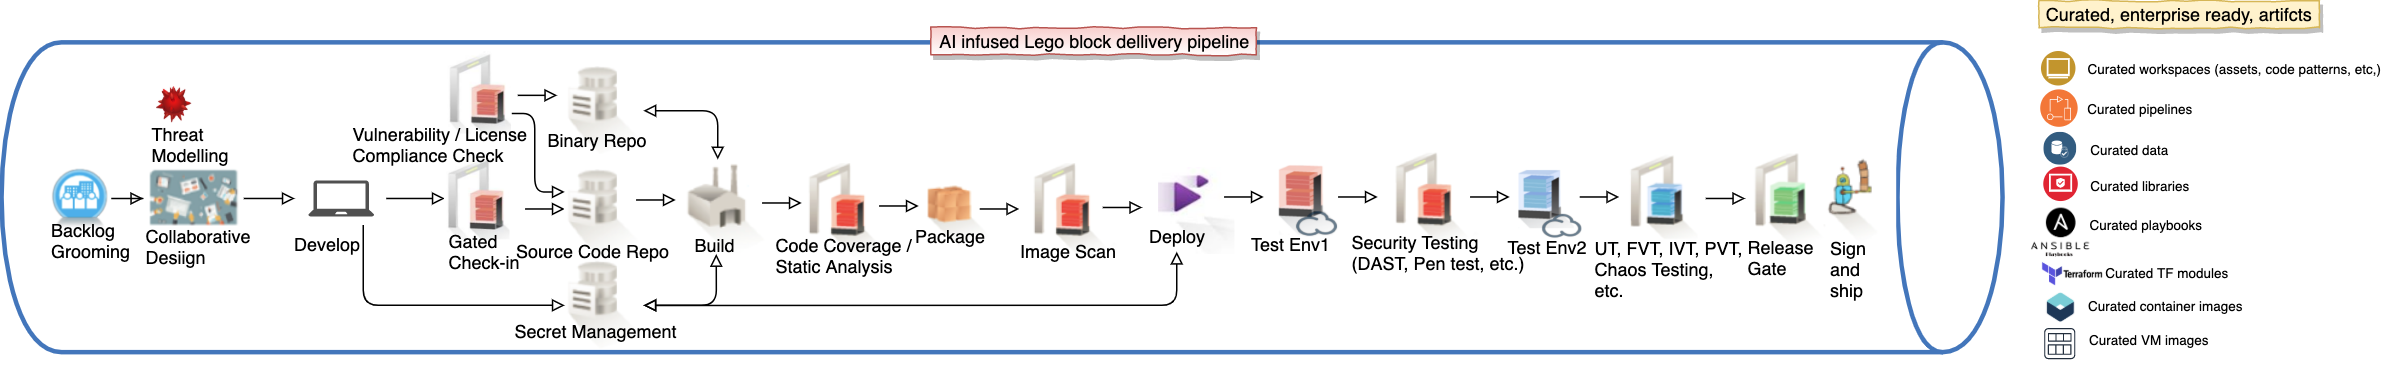 Figure 2: Lego block delivery pipeline